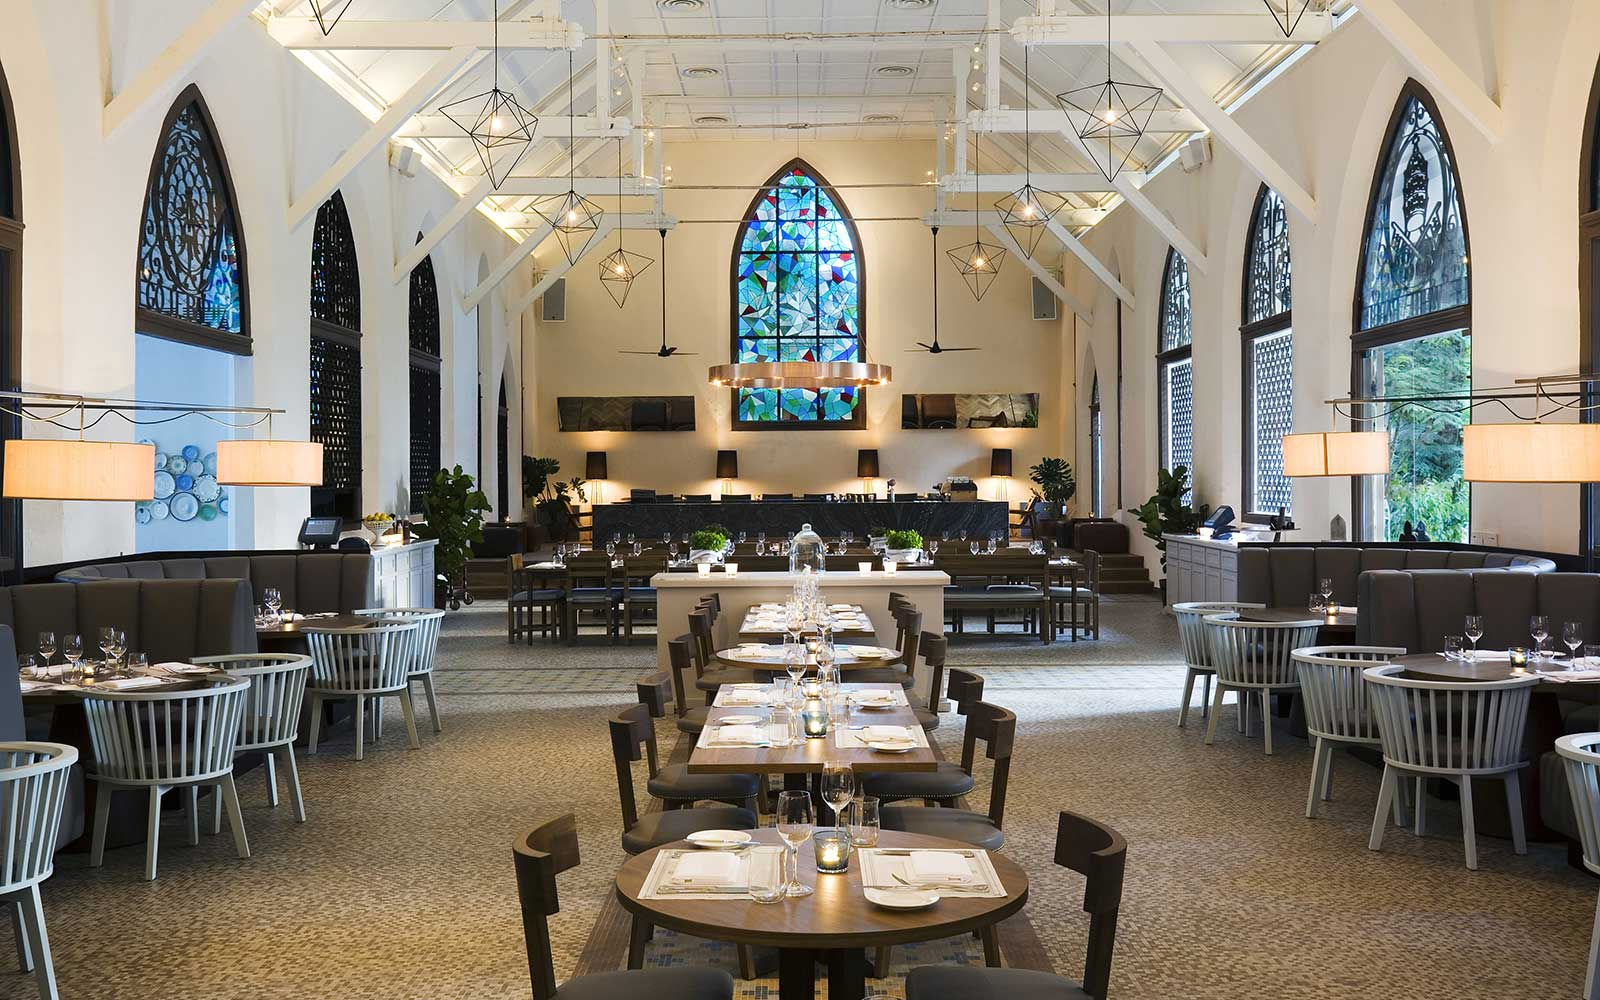 13 Grand Churches, Reincarnated: White Rabbit Restaurant in Singapore